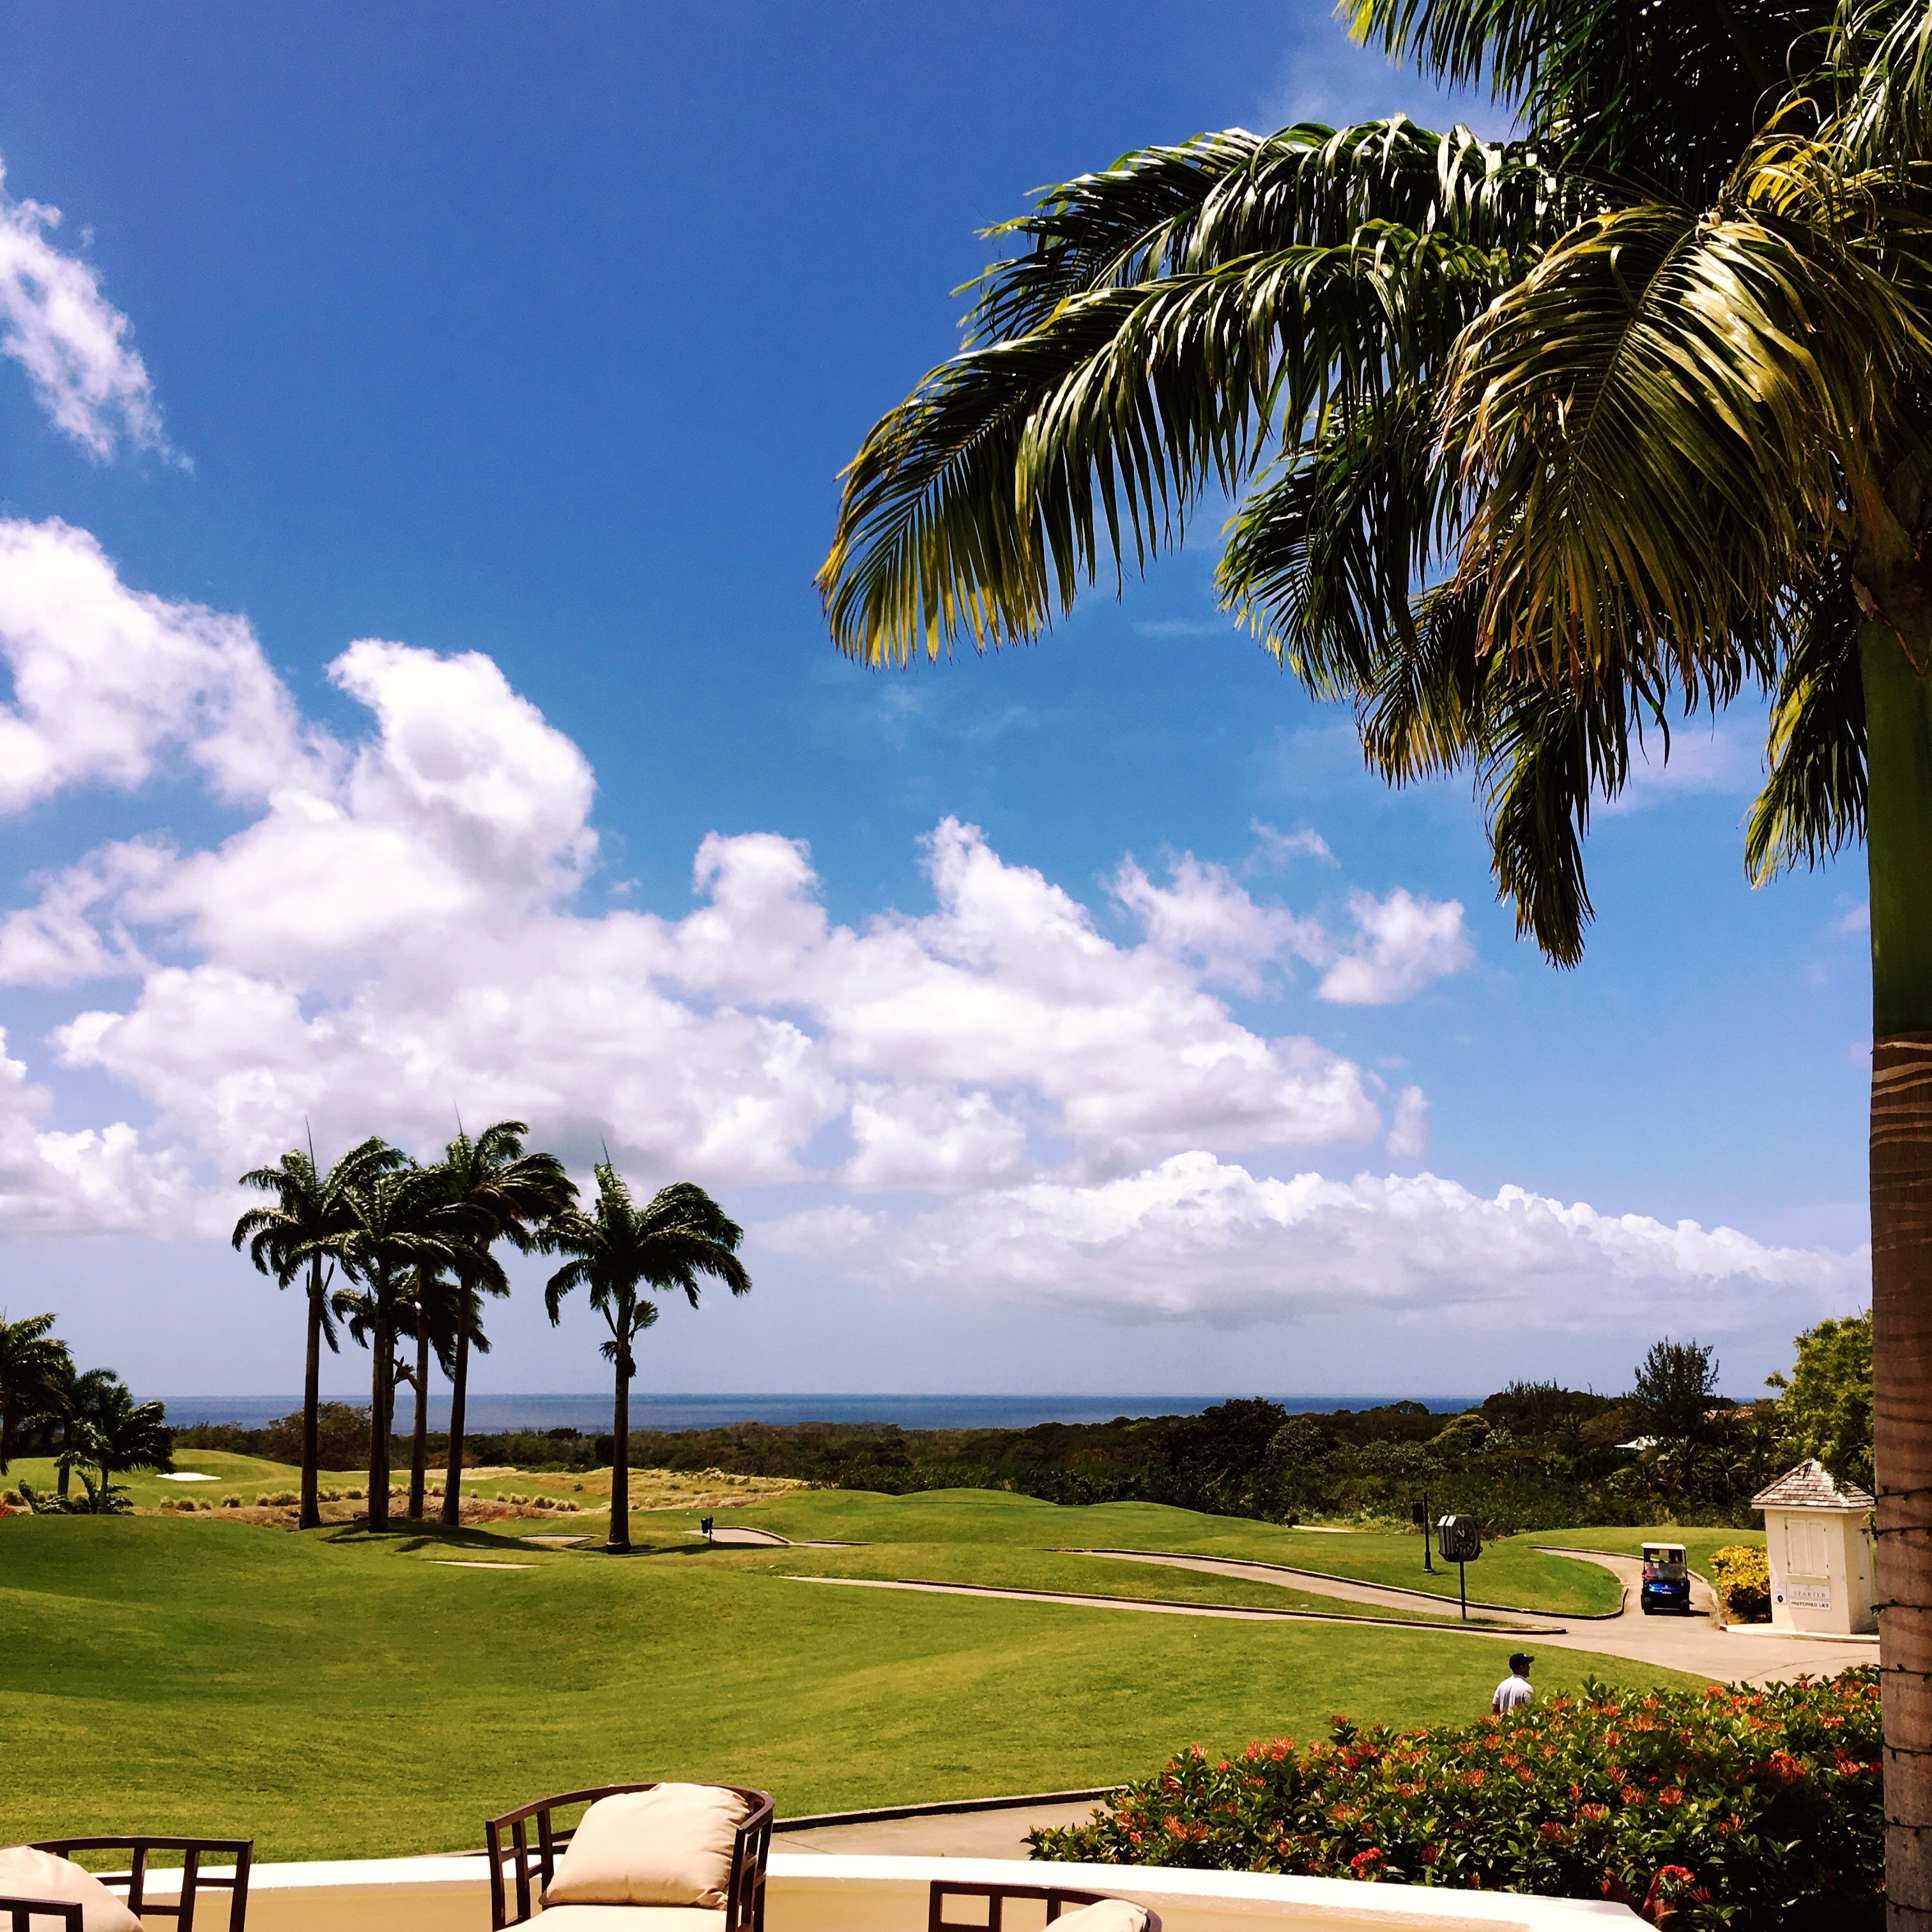 Best Things to do in Barbados - Golf course at Royal Westmoreland